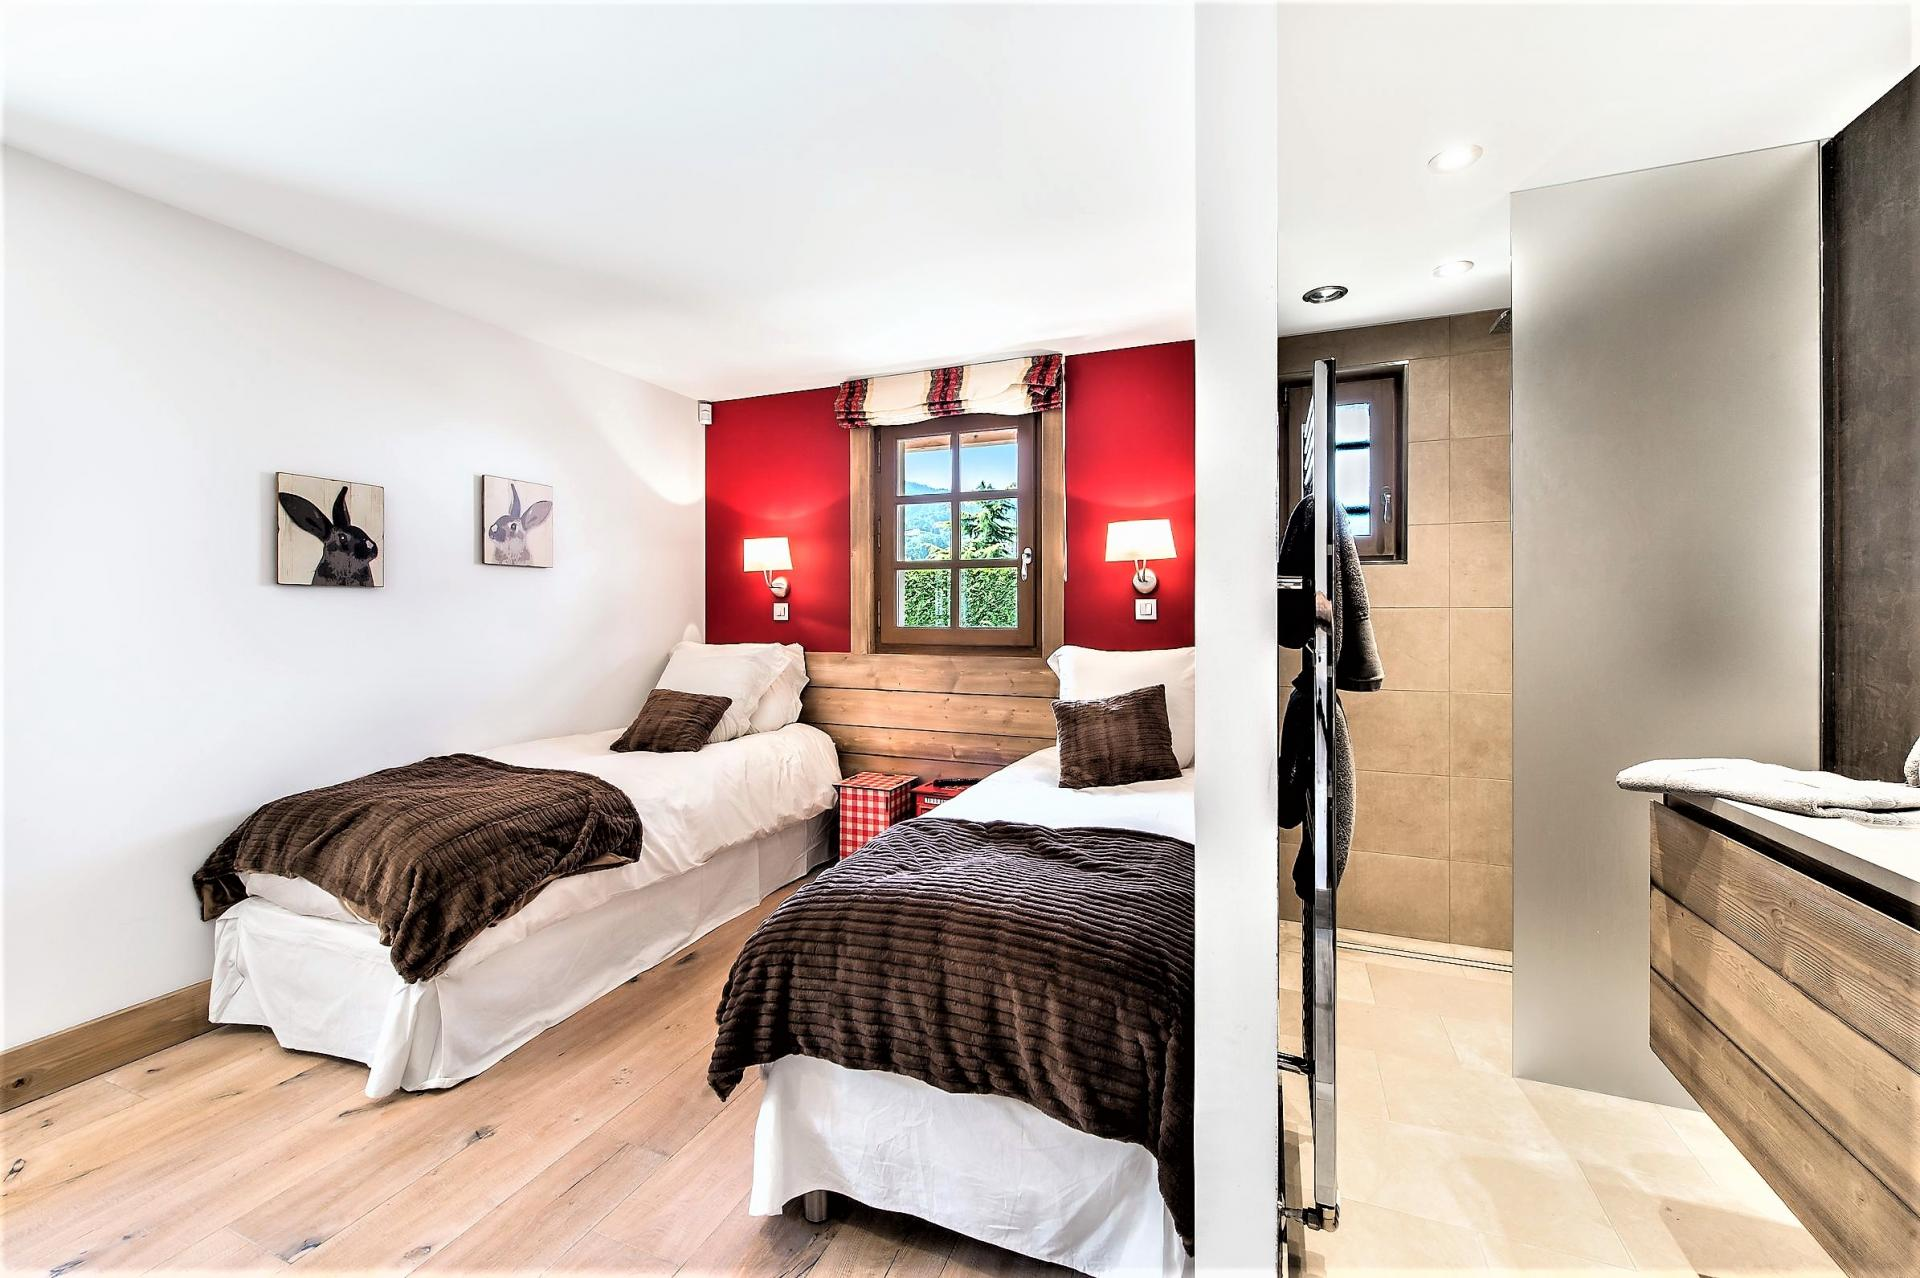 ANOTHER TWIN BEDROOM IN CHALET DES ARAVIS